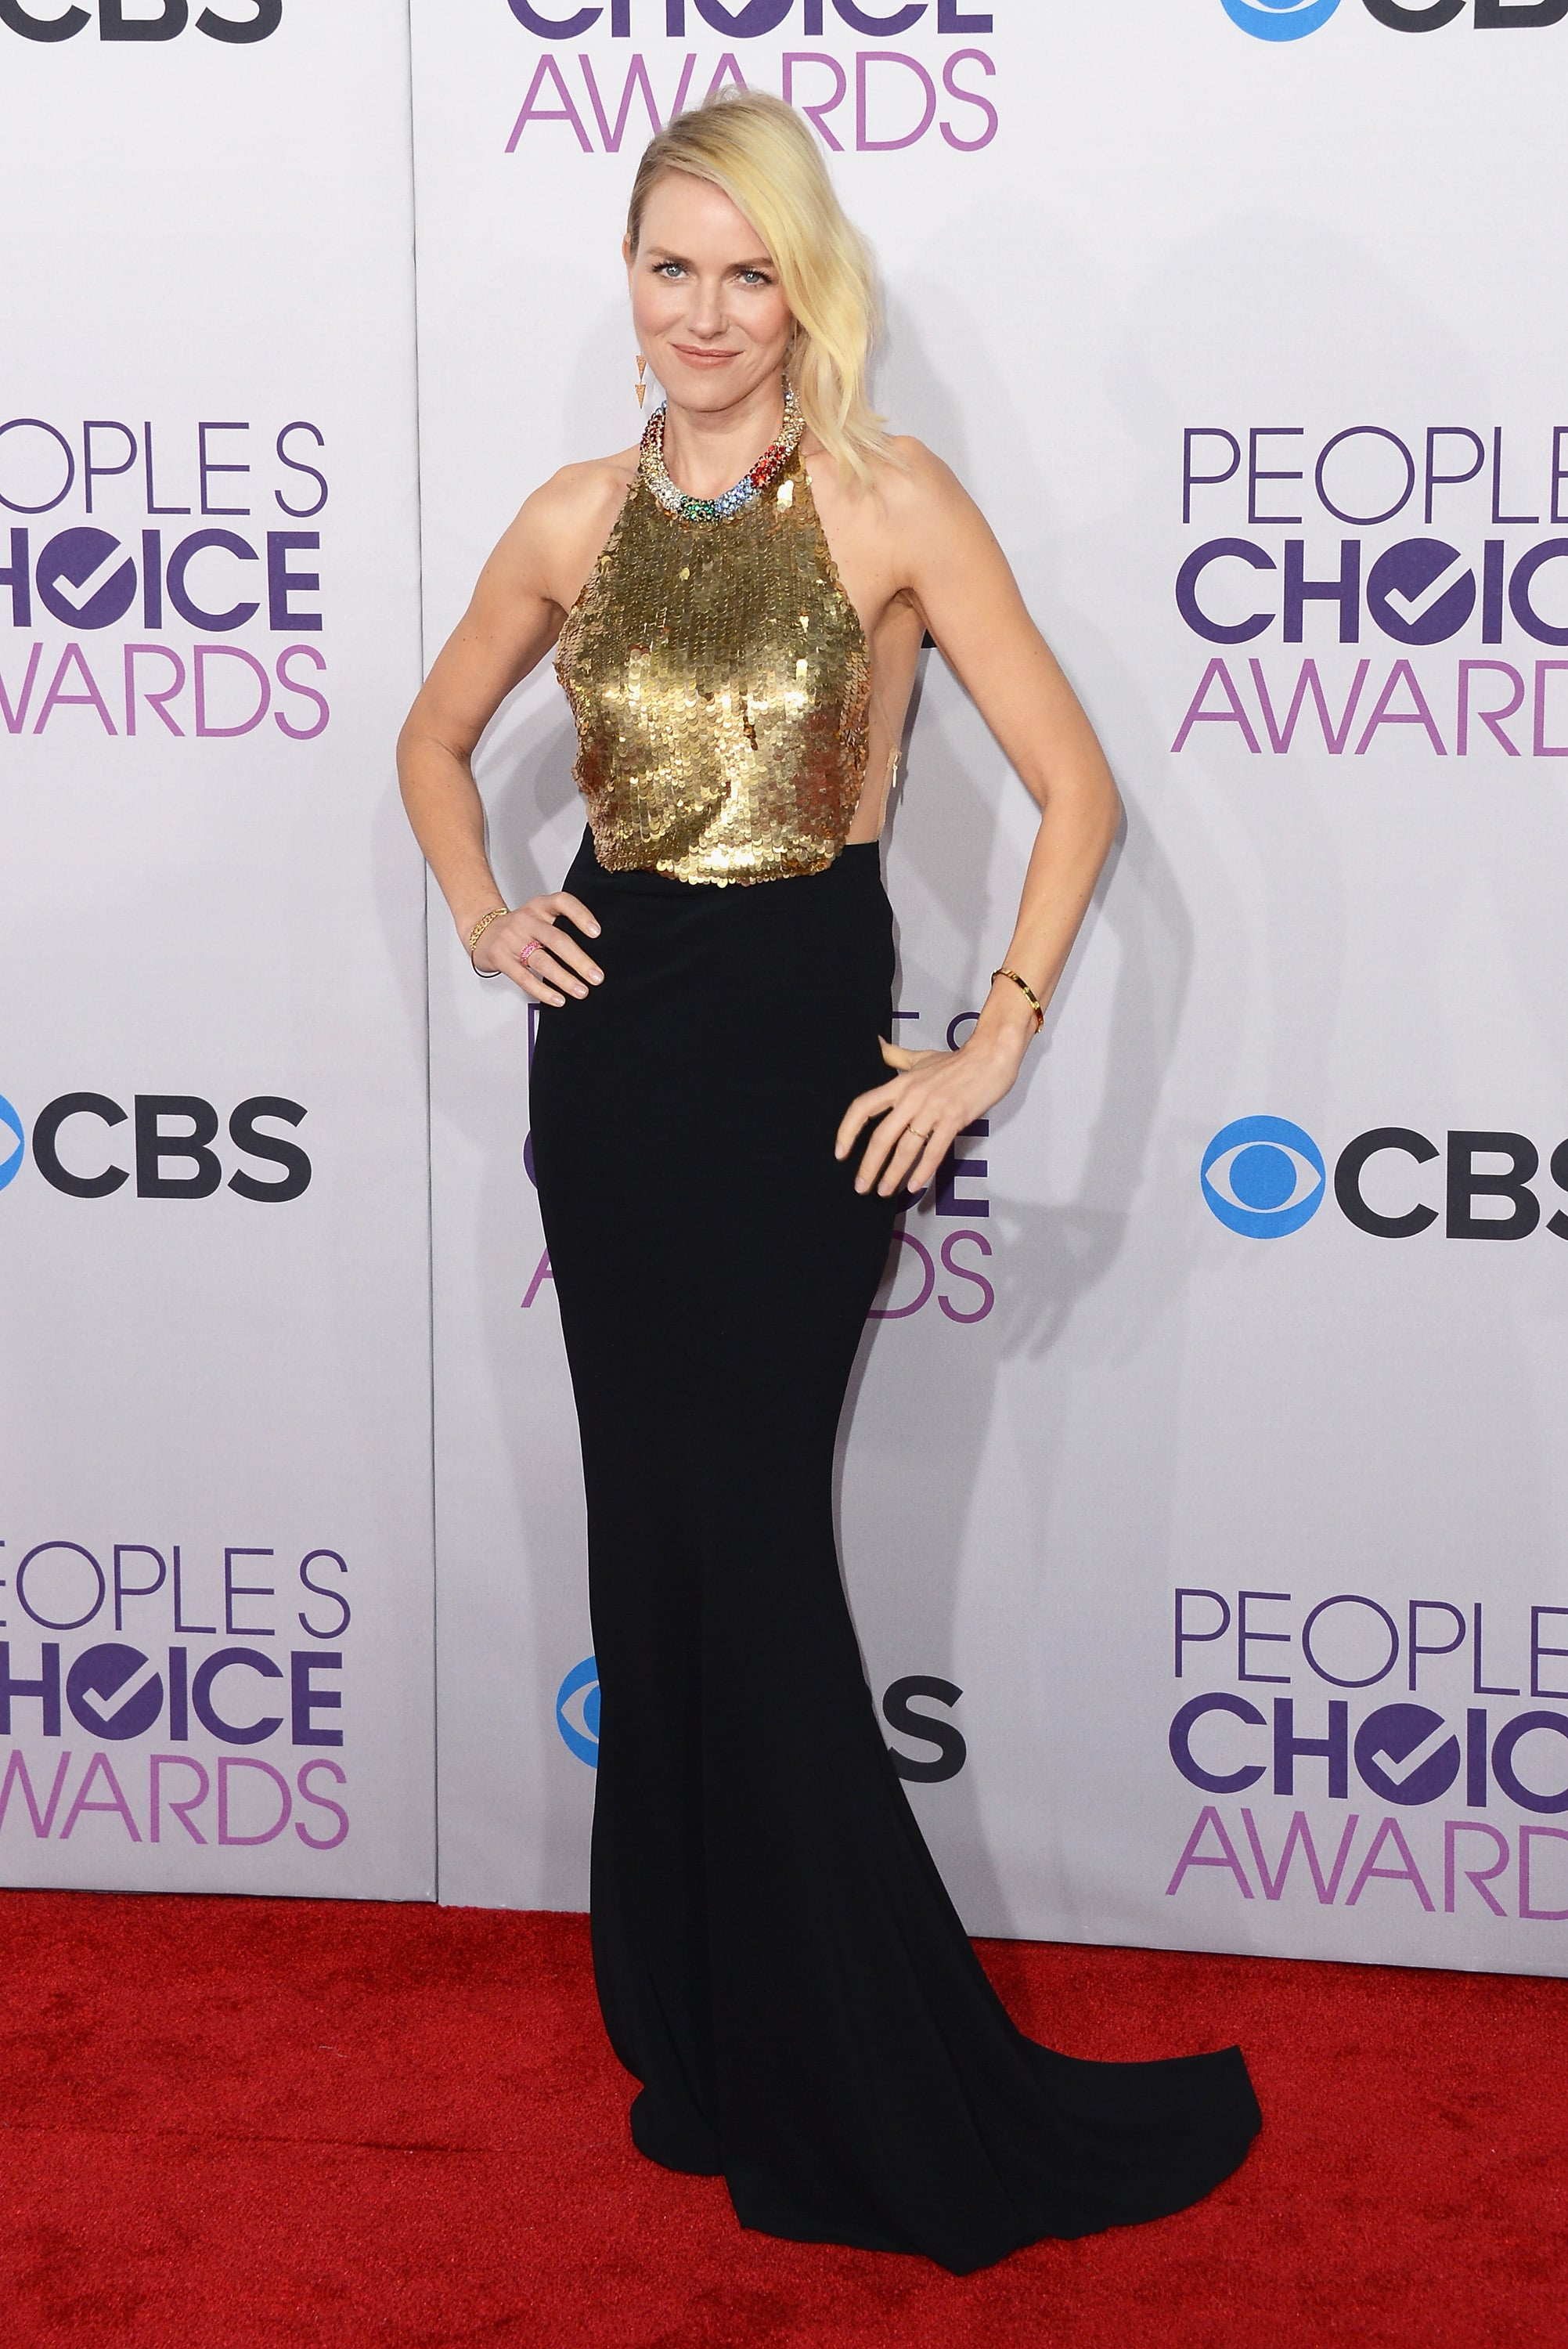 Naomi Watts sparkled in a black and gold gown.